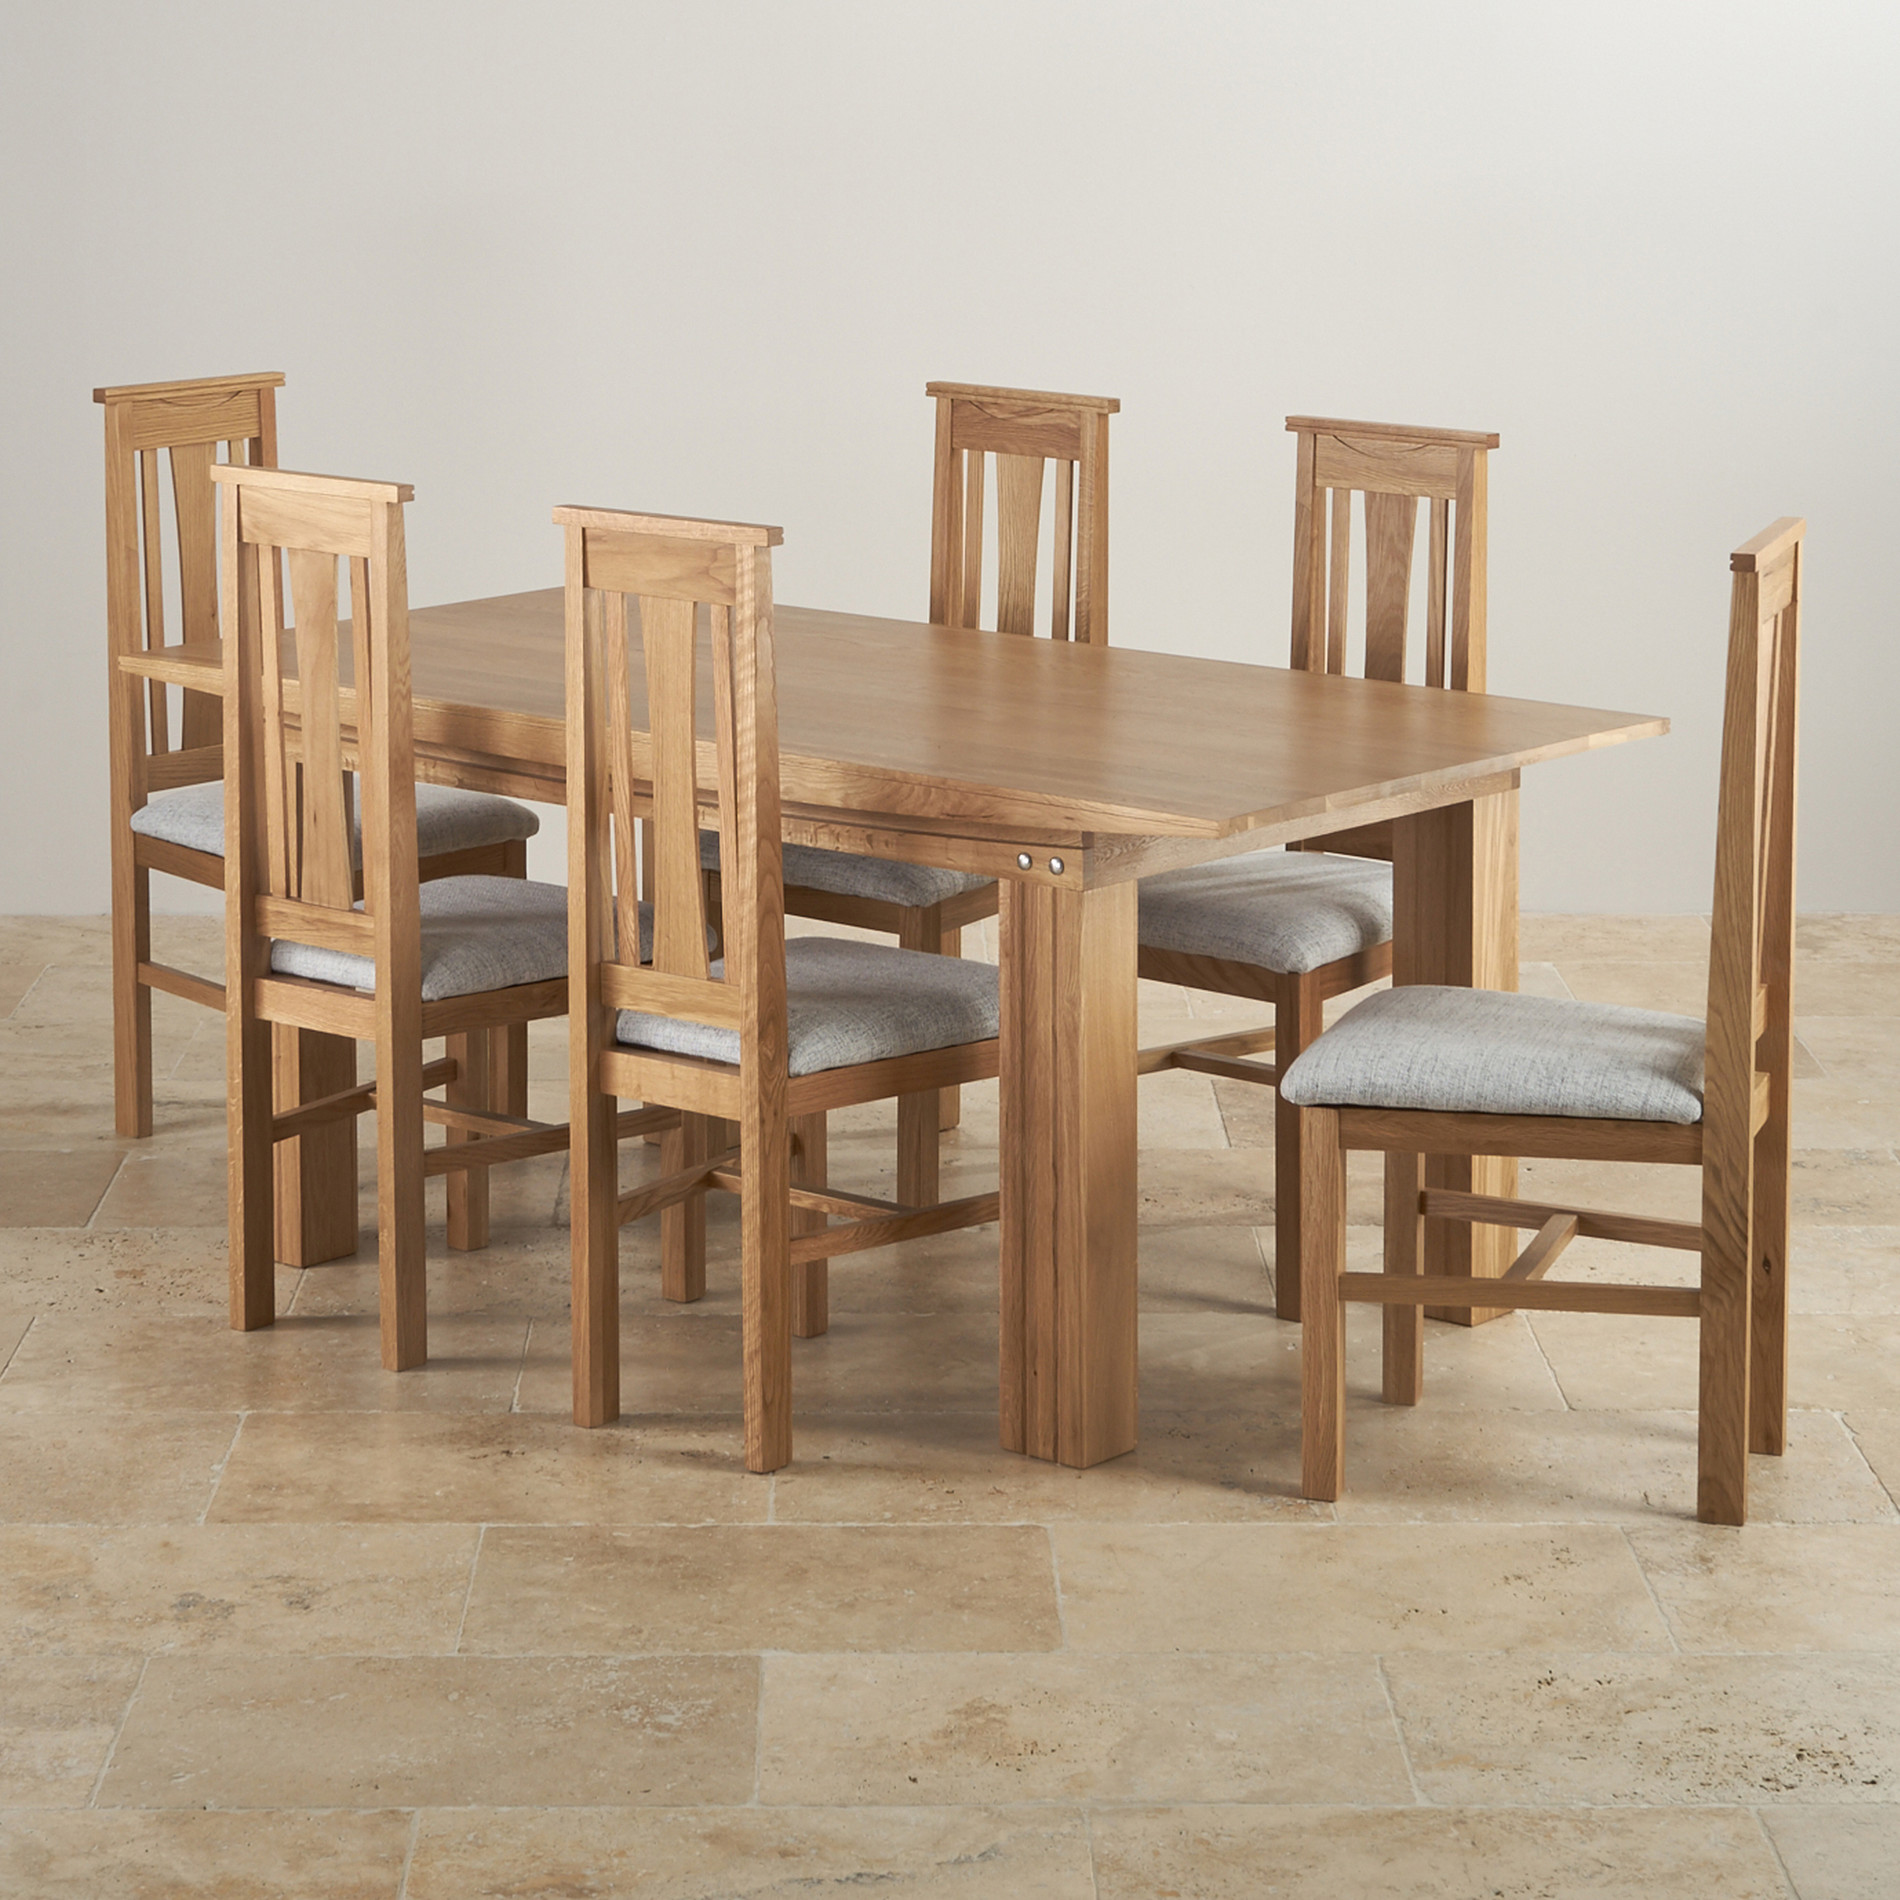 6ft Table With 6 Chairs: Tokyo Natural Solid Oak Dining Set